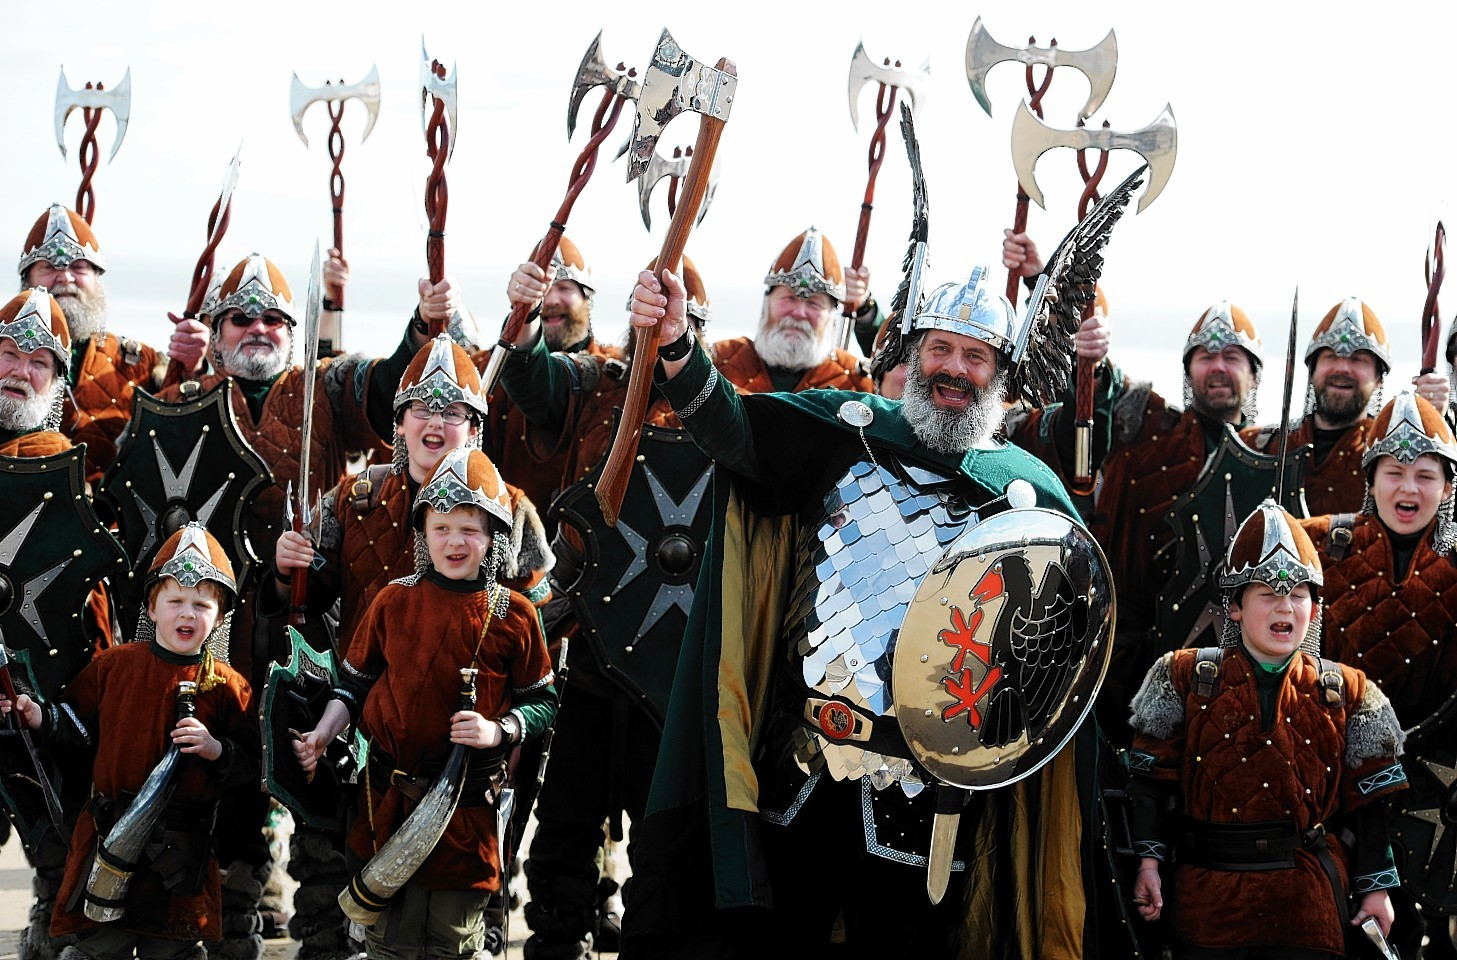 To highlight the breath-taking culture of Shetland and Scotland to the VisitScotland Expo at the AECC, a 38 man Jarl Squad of Vikings from Shetland arrived at Aberdeen beach yesterday.